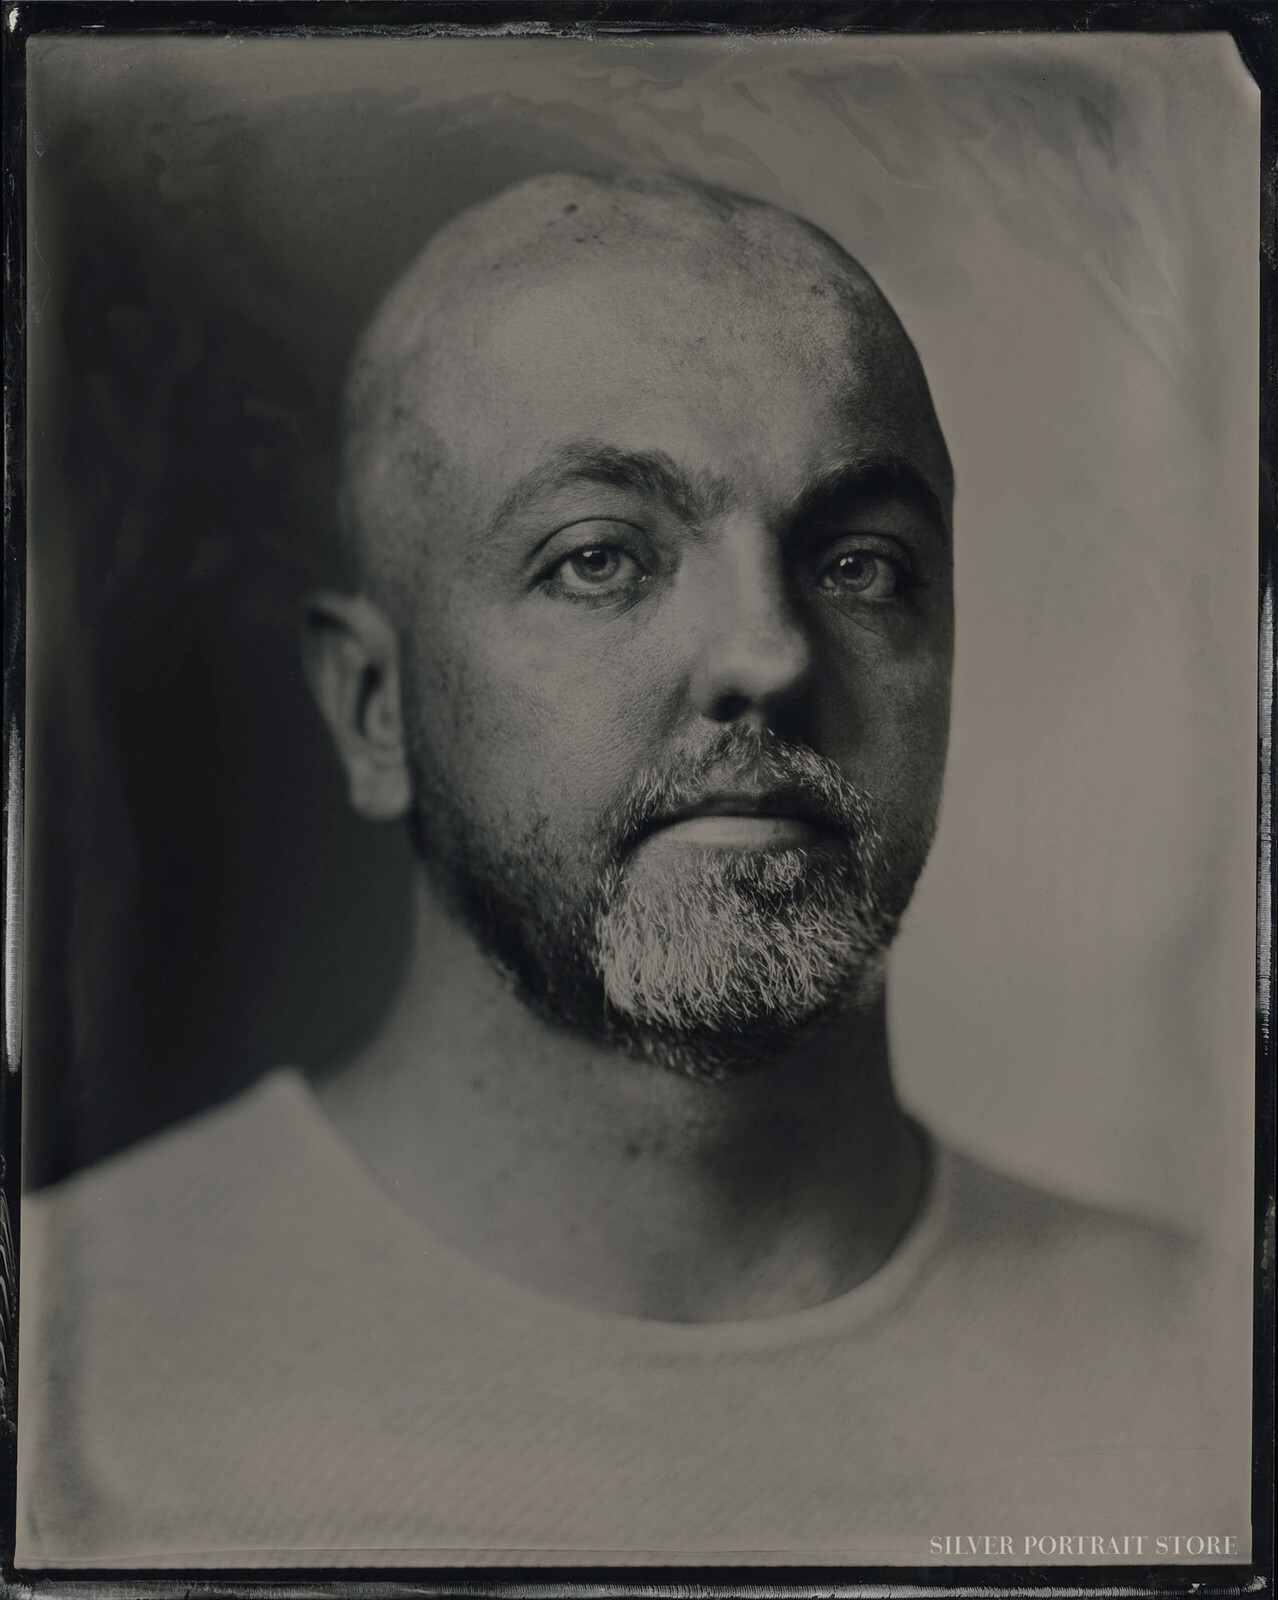 Floris-Silver Portrait Store-scan from Wet plate collodion-Tintype10 x 12 cm.